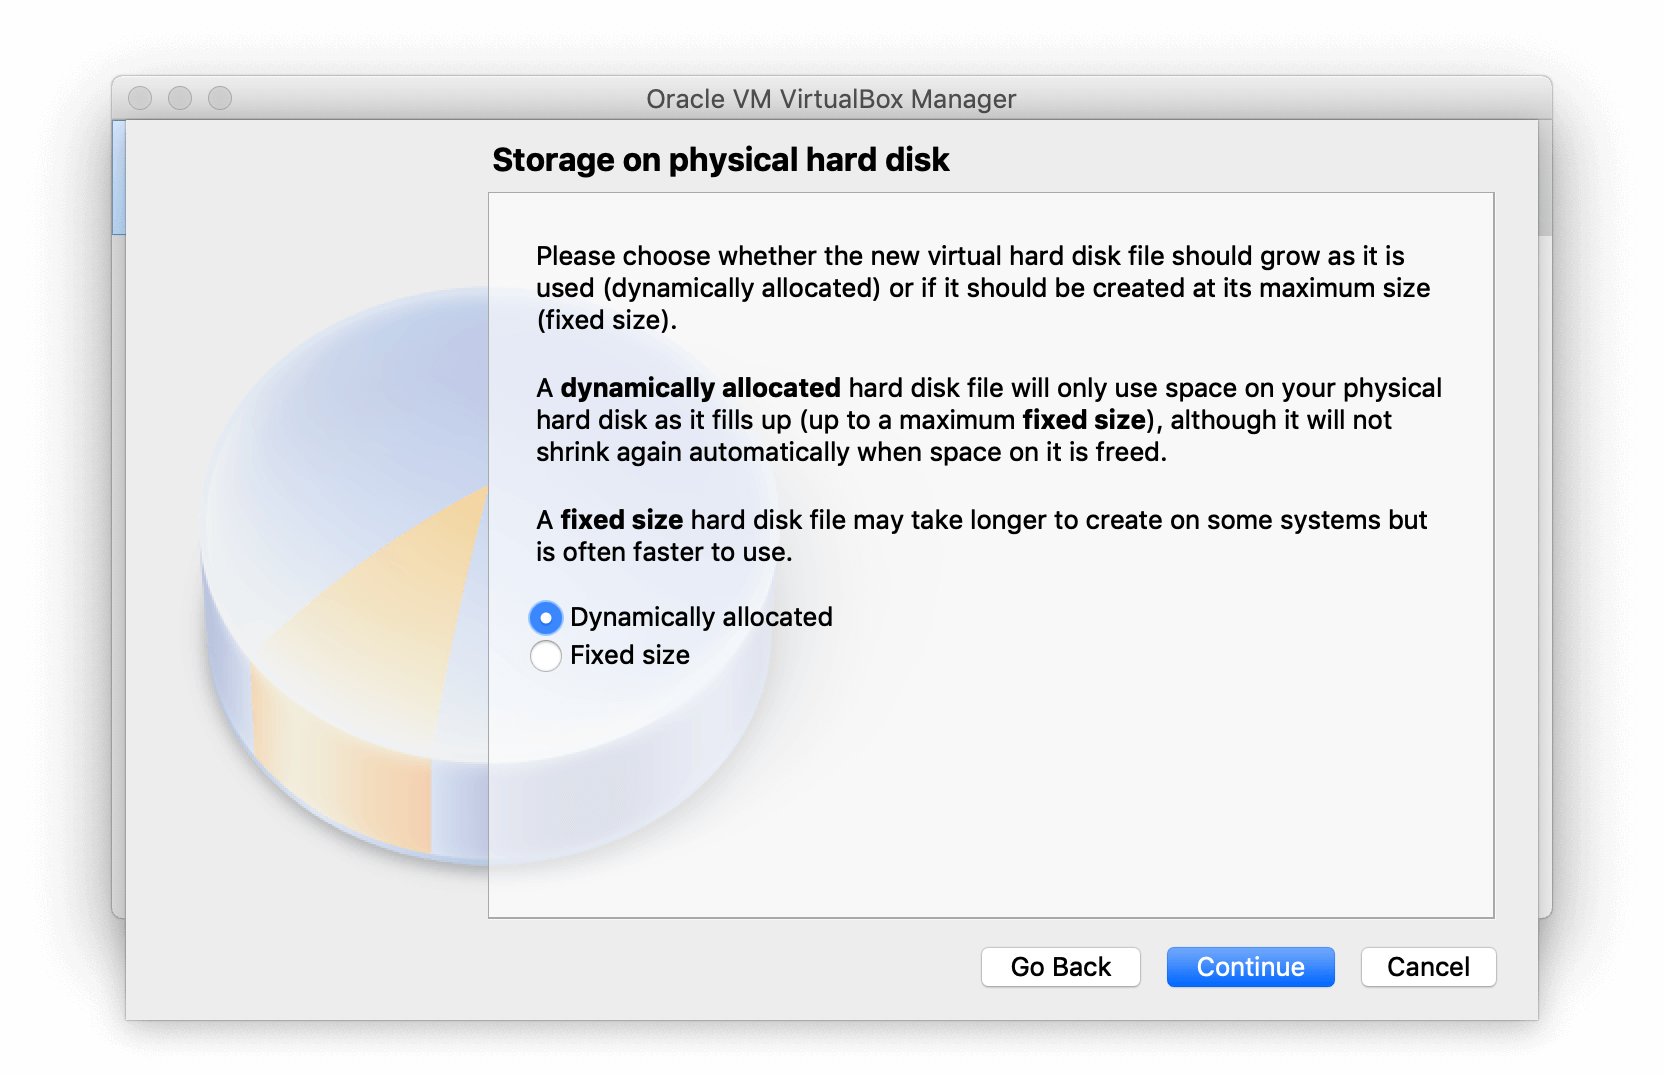 Storage on Physical hard disk section of VirtualBox Manager